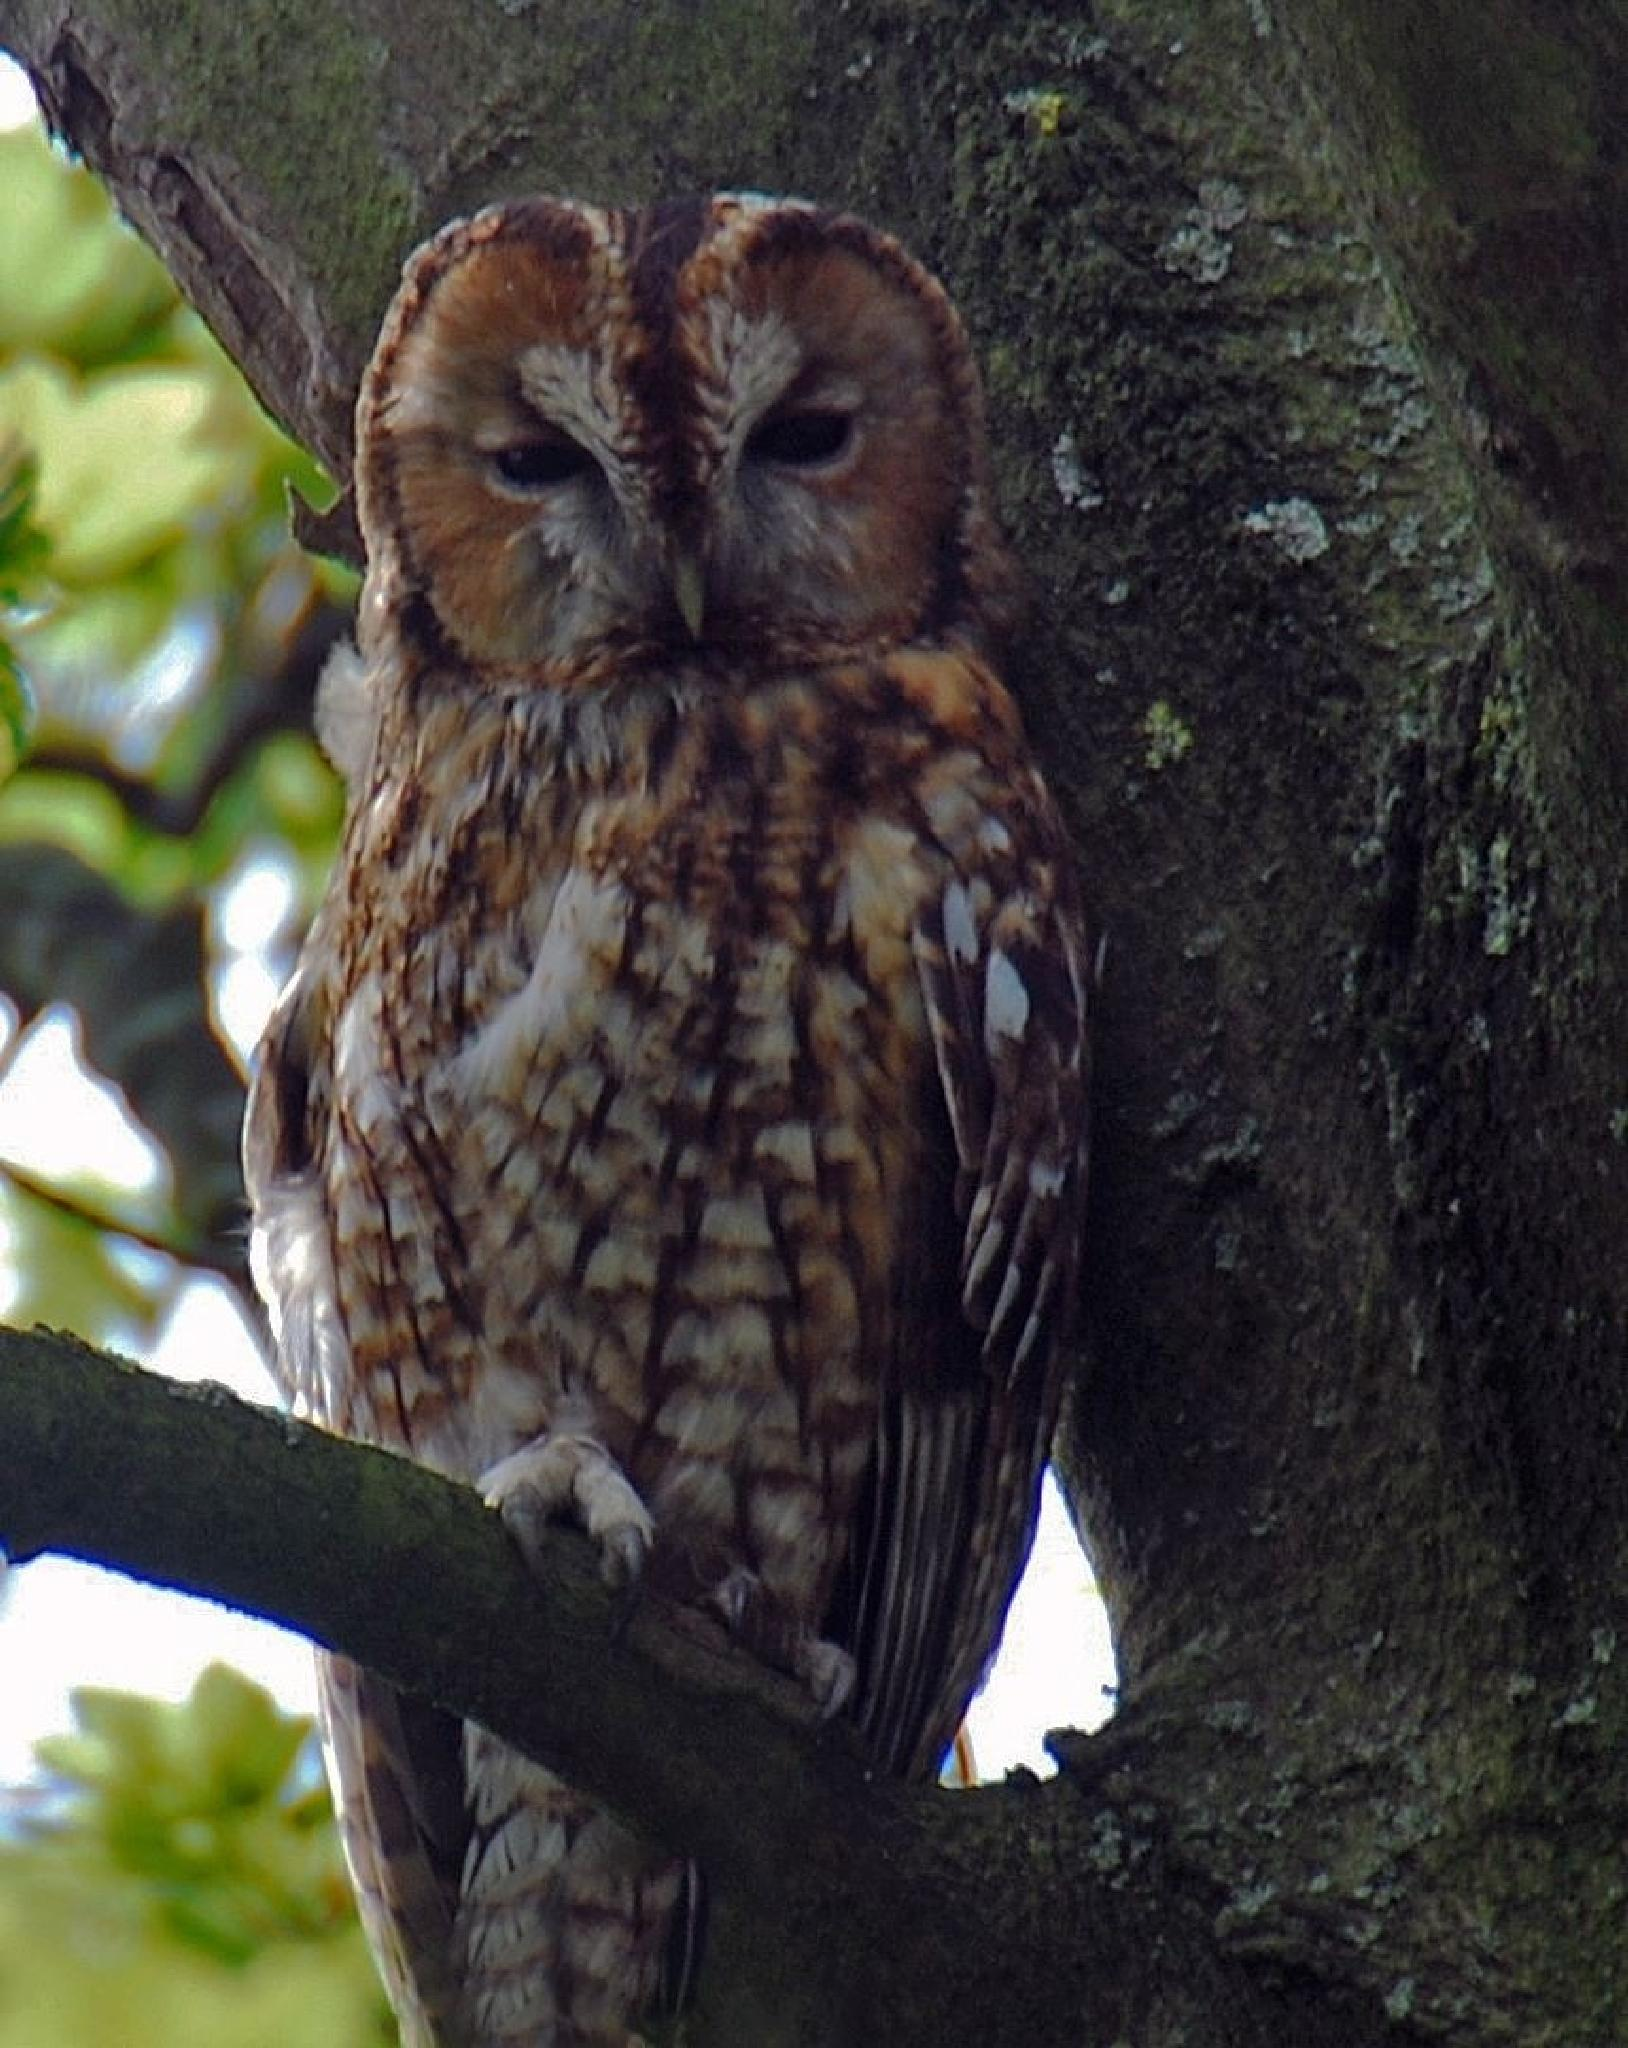 Tawny owl by vincent mcnutt